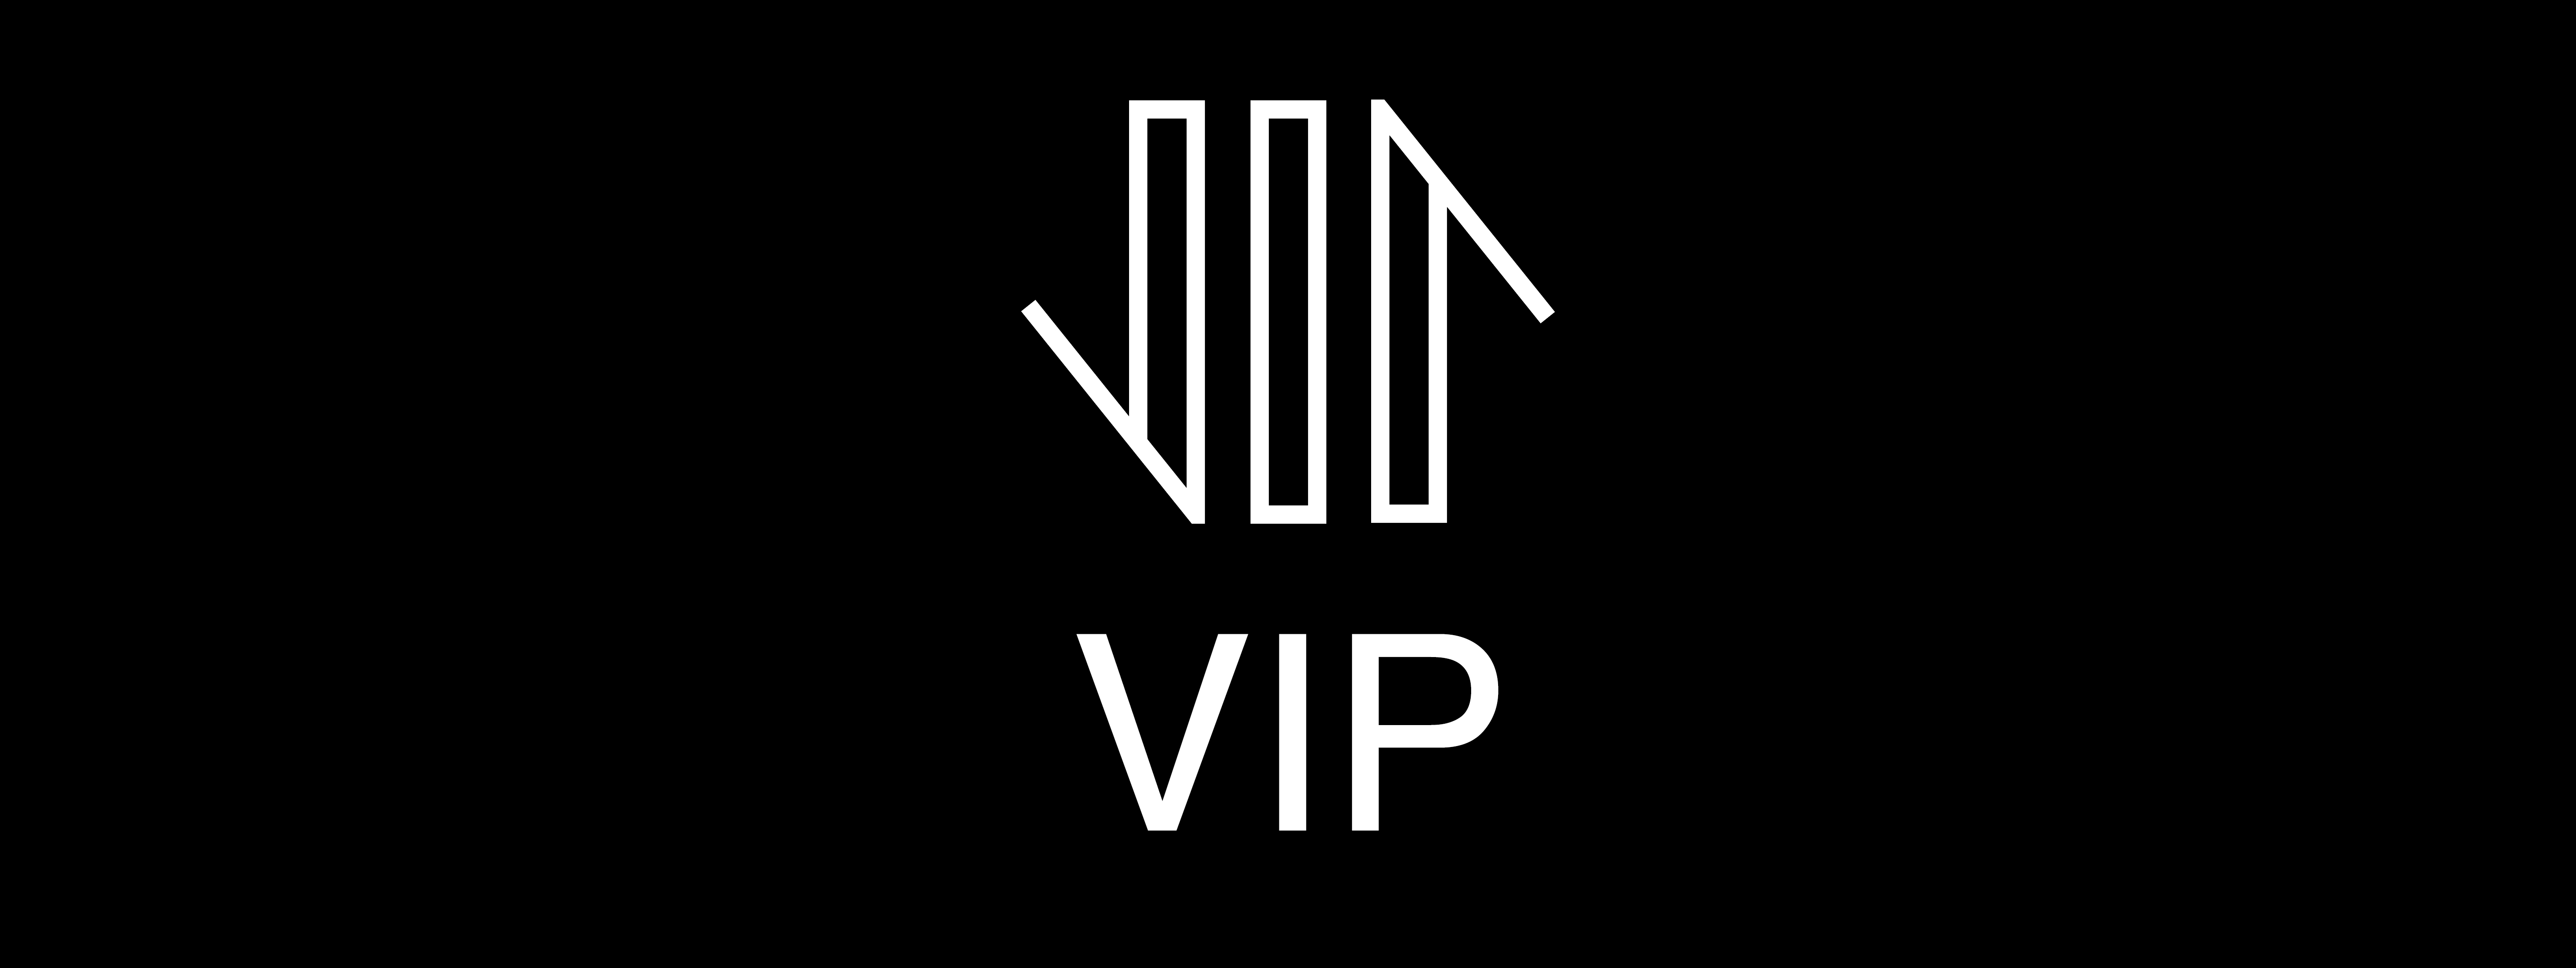 Vir VIP, Subscription Box, Male Grooming Products, Toiletries